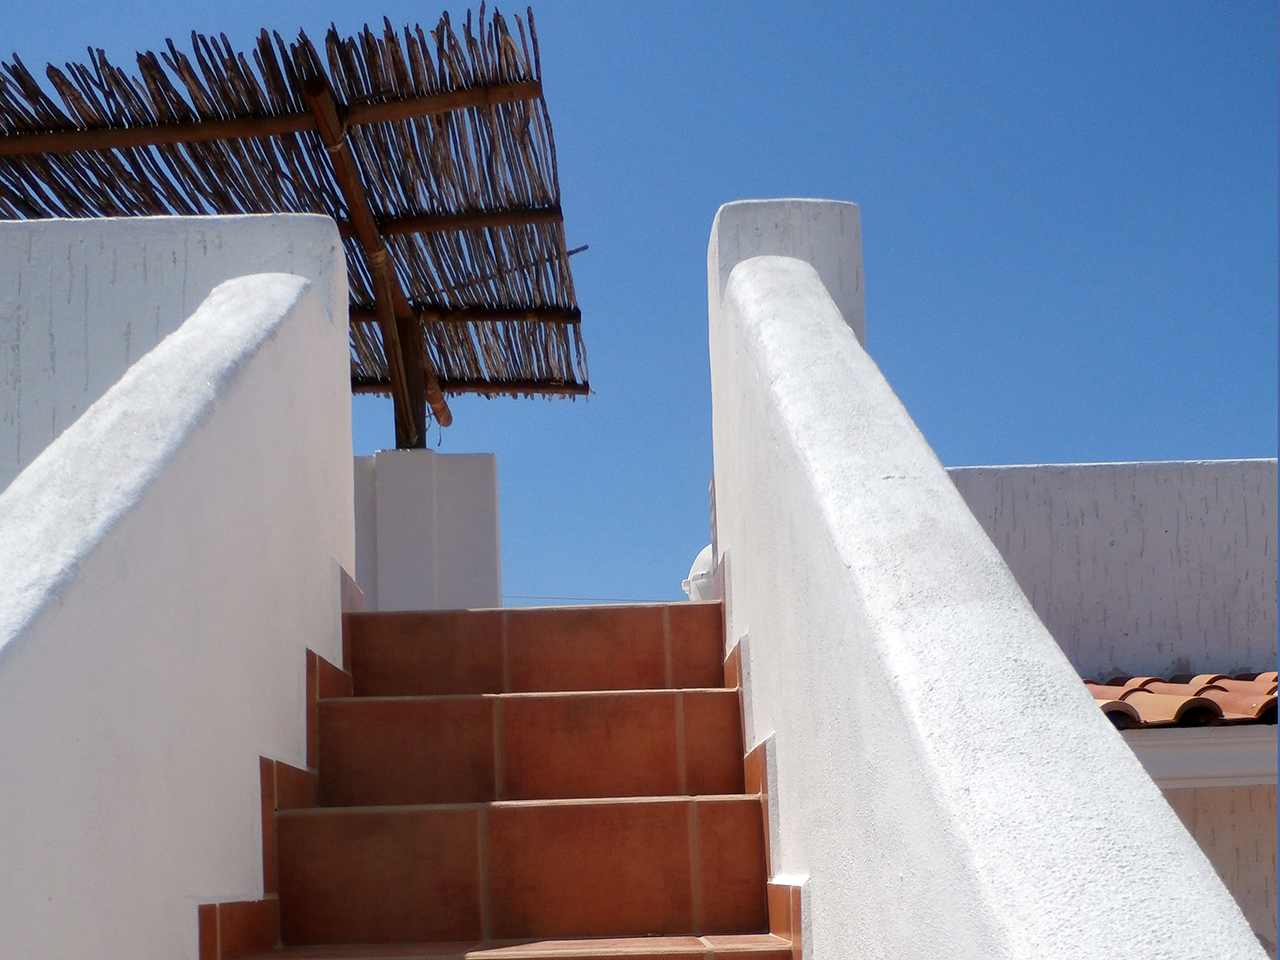 Stairs leading the the Rooftop Deck and Tequila Bar at Divers Inn MX Bed & Breakfast in La Paz, Mexico